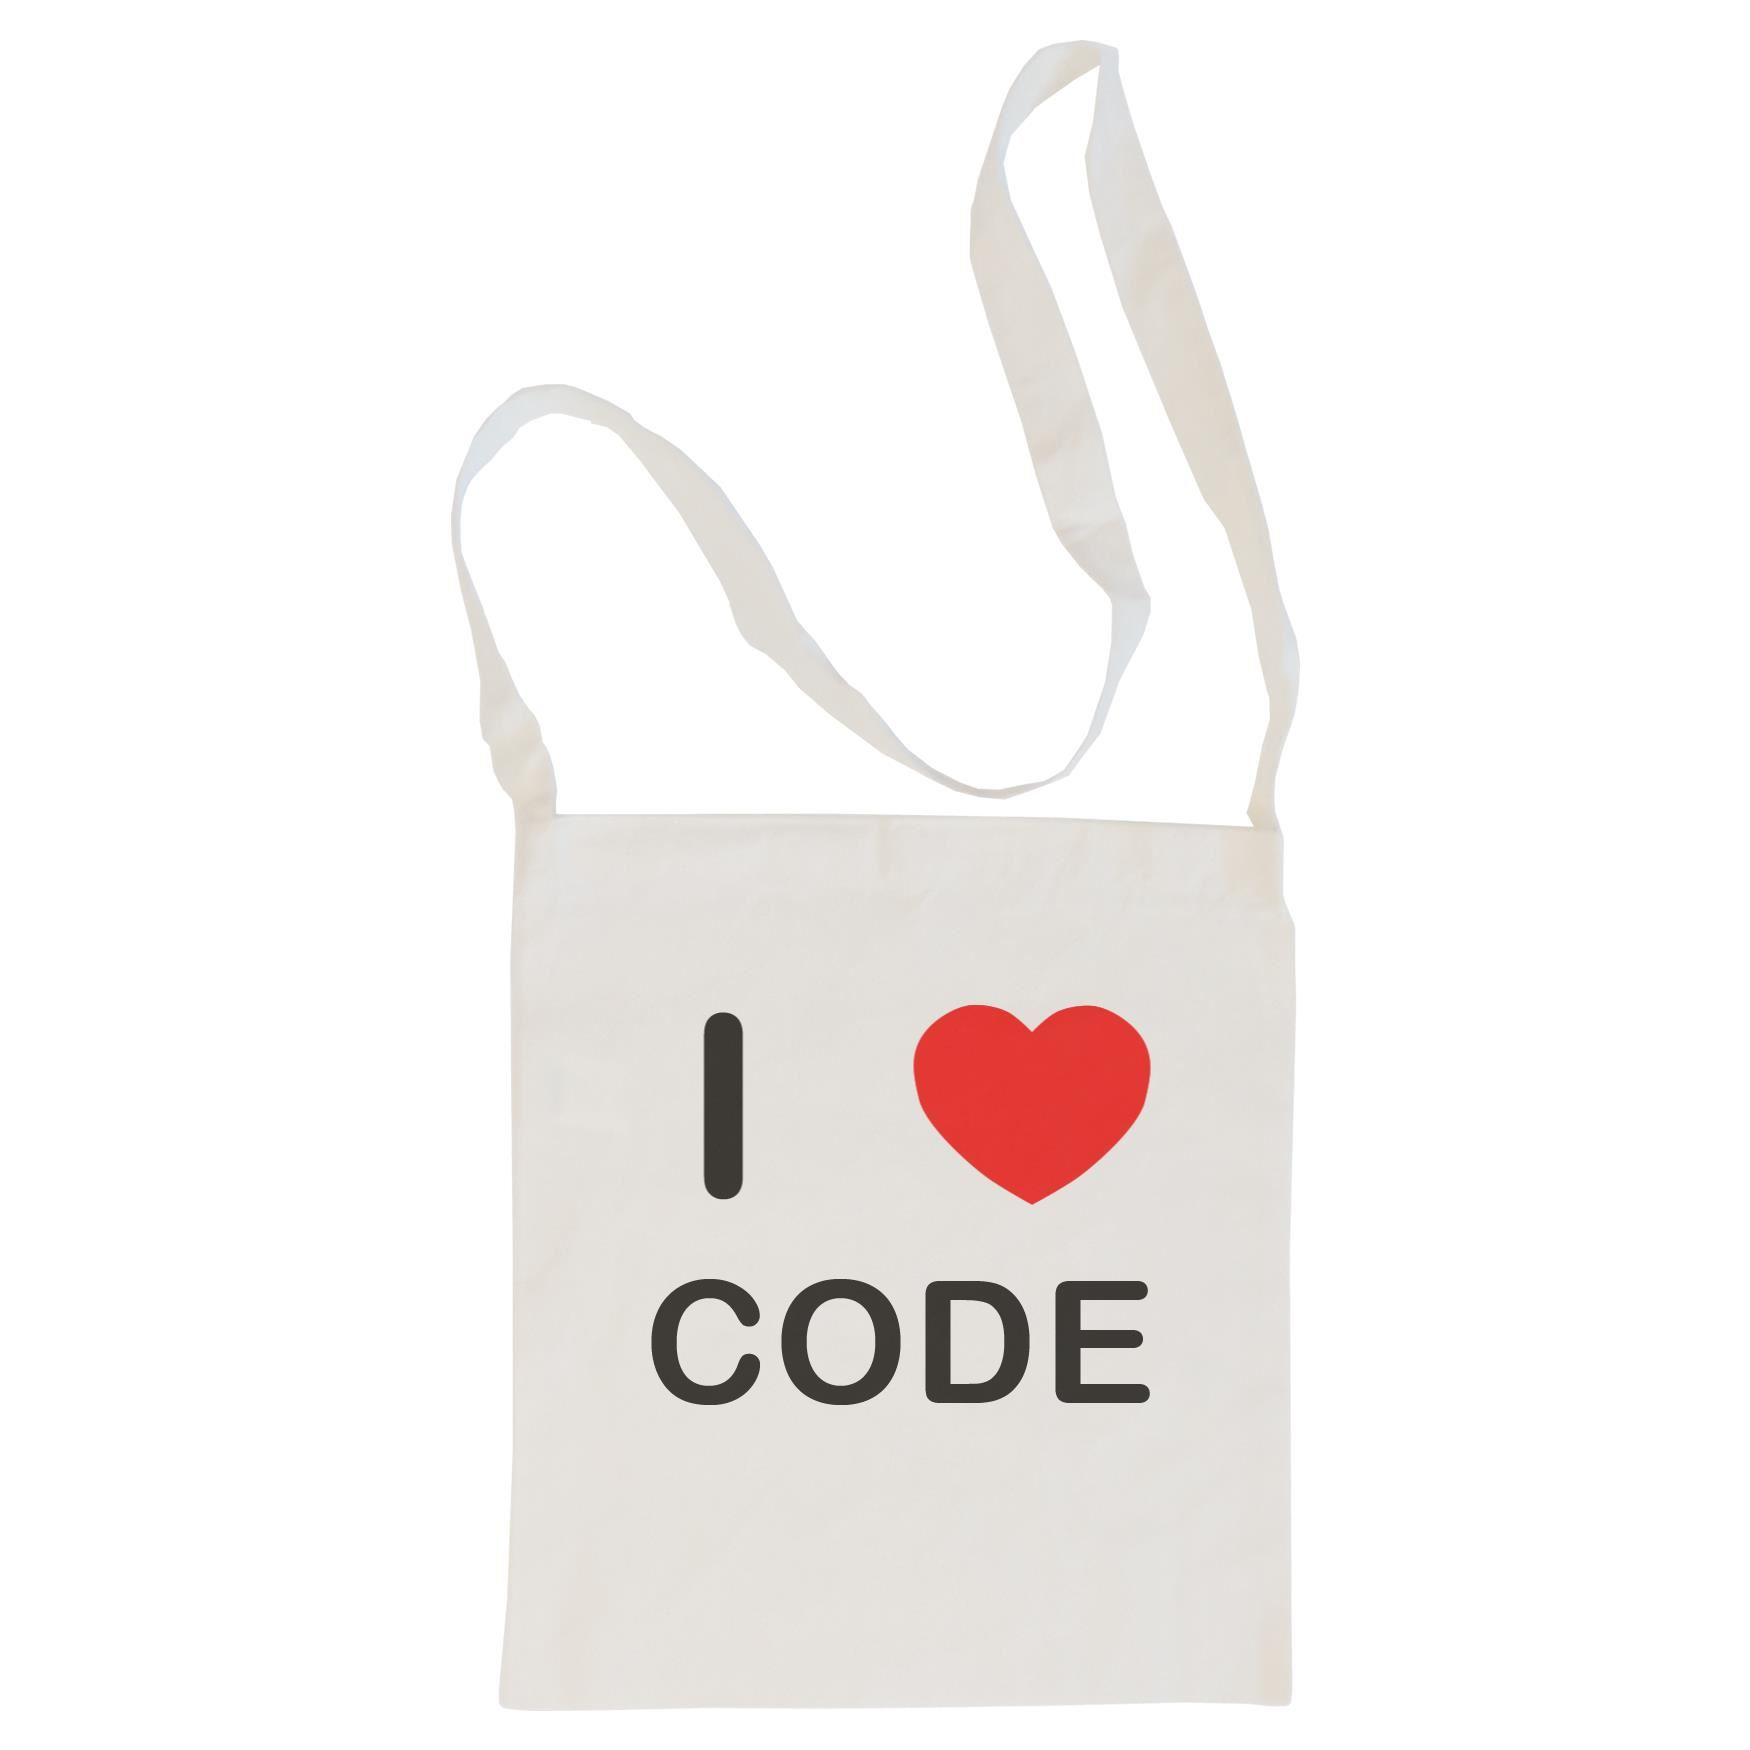 I Love Code - Cotton Bag | Size choice Tote, Shopper or Sling